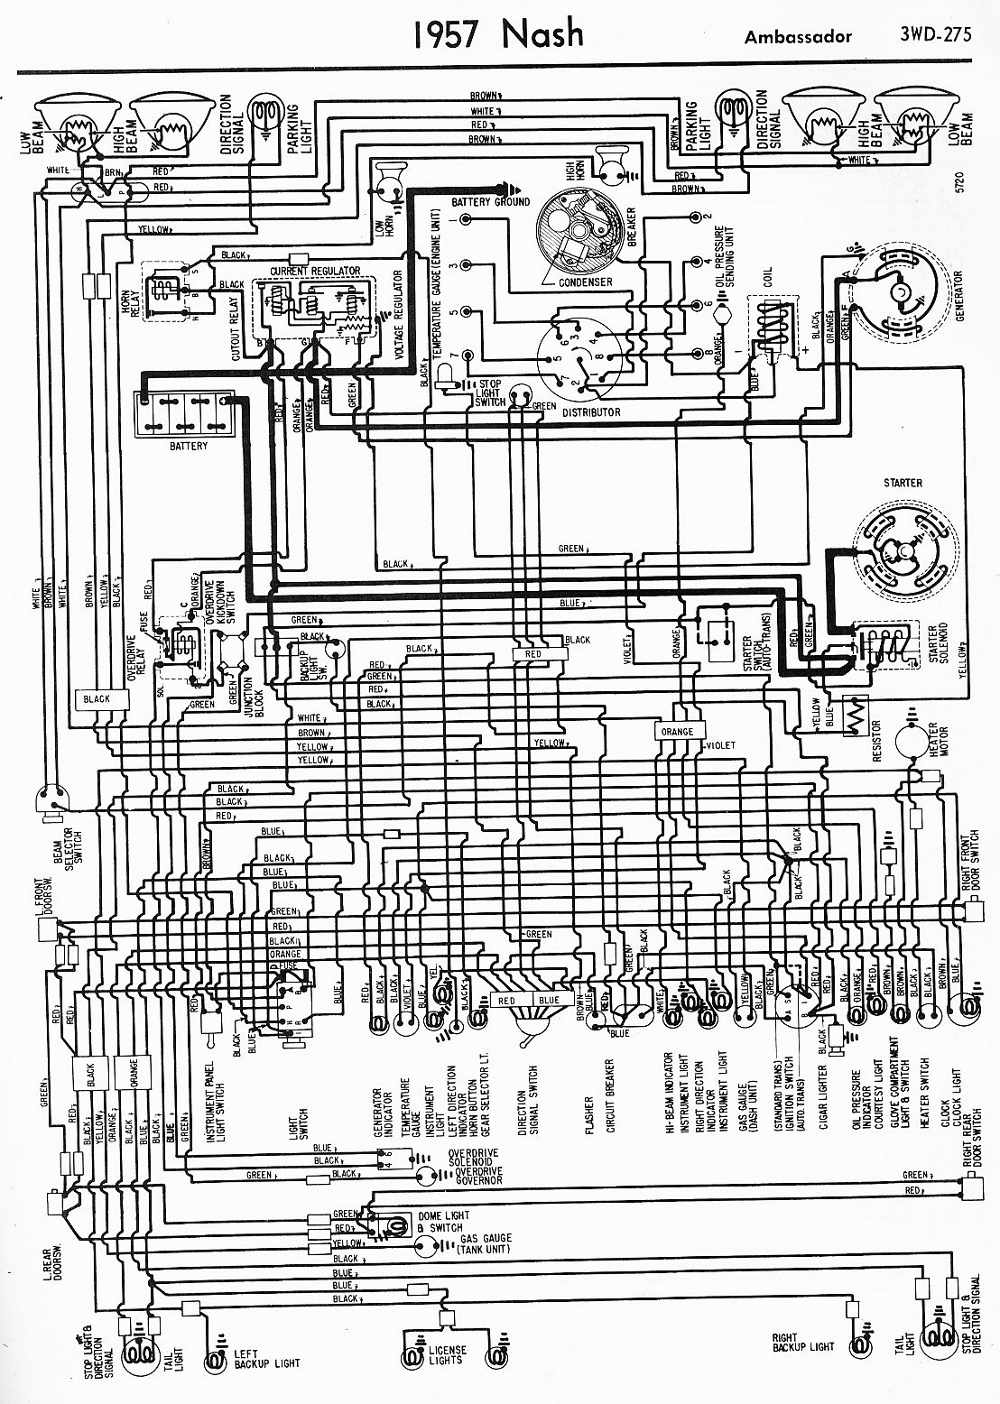 wiring diagrams of 1957 nash ambassador dual xd7500 wiring diagram dolgular com dual xd7500 wiring harness at n-0.co